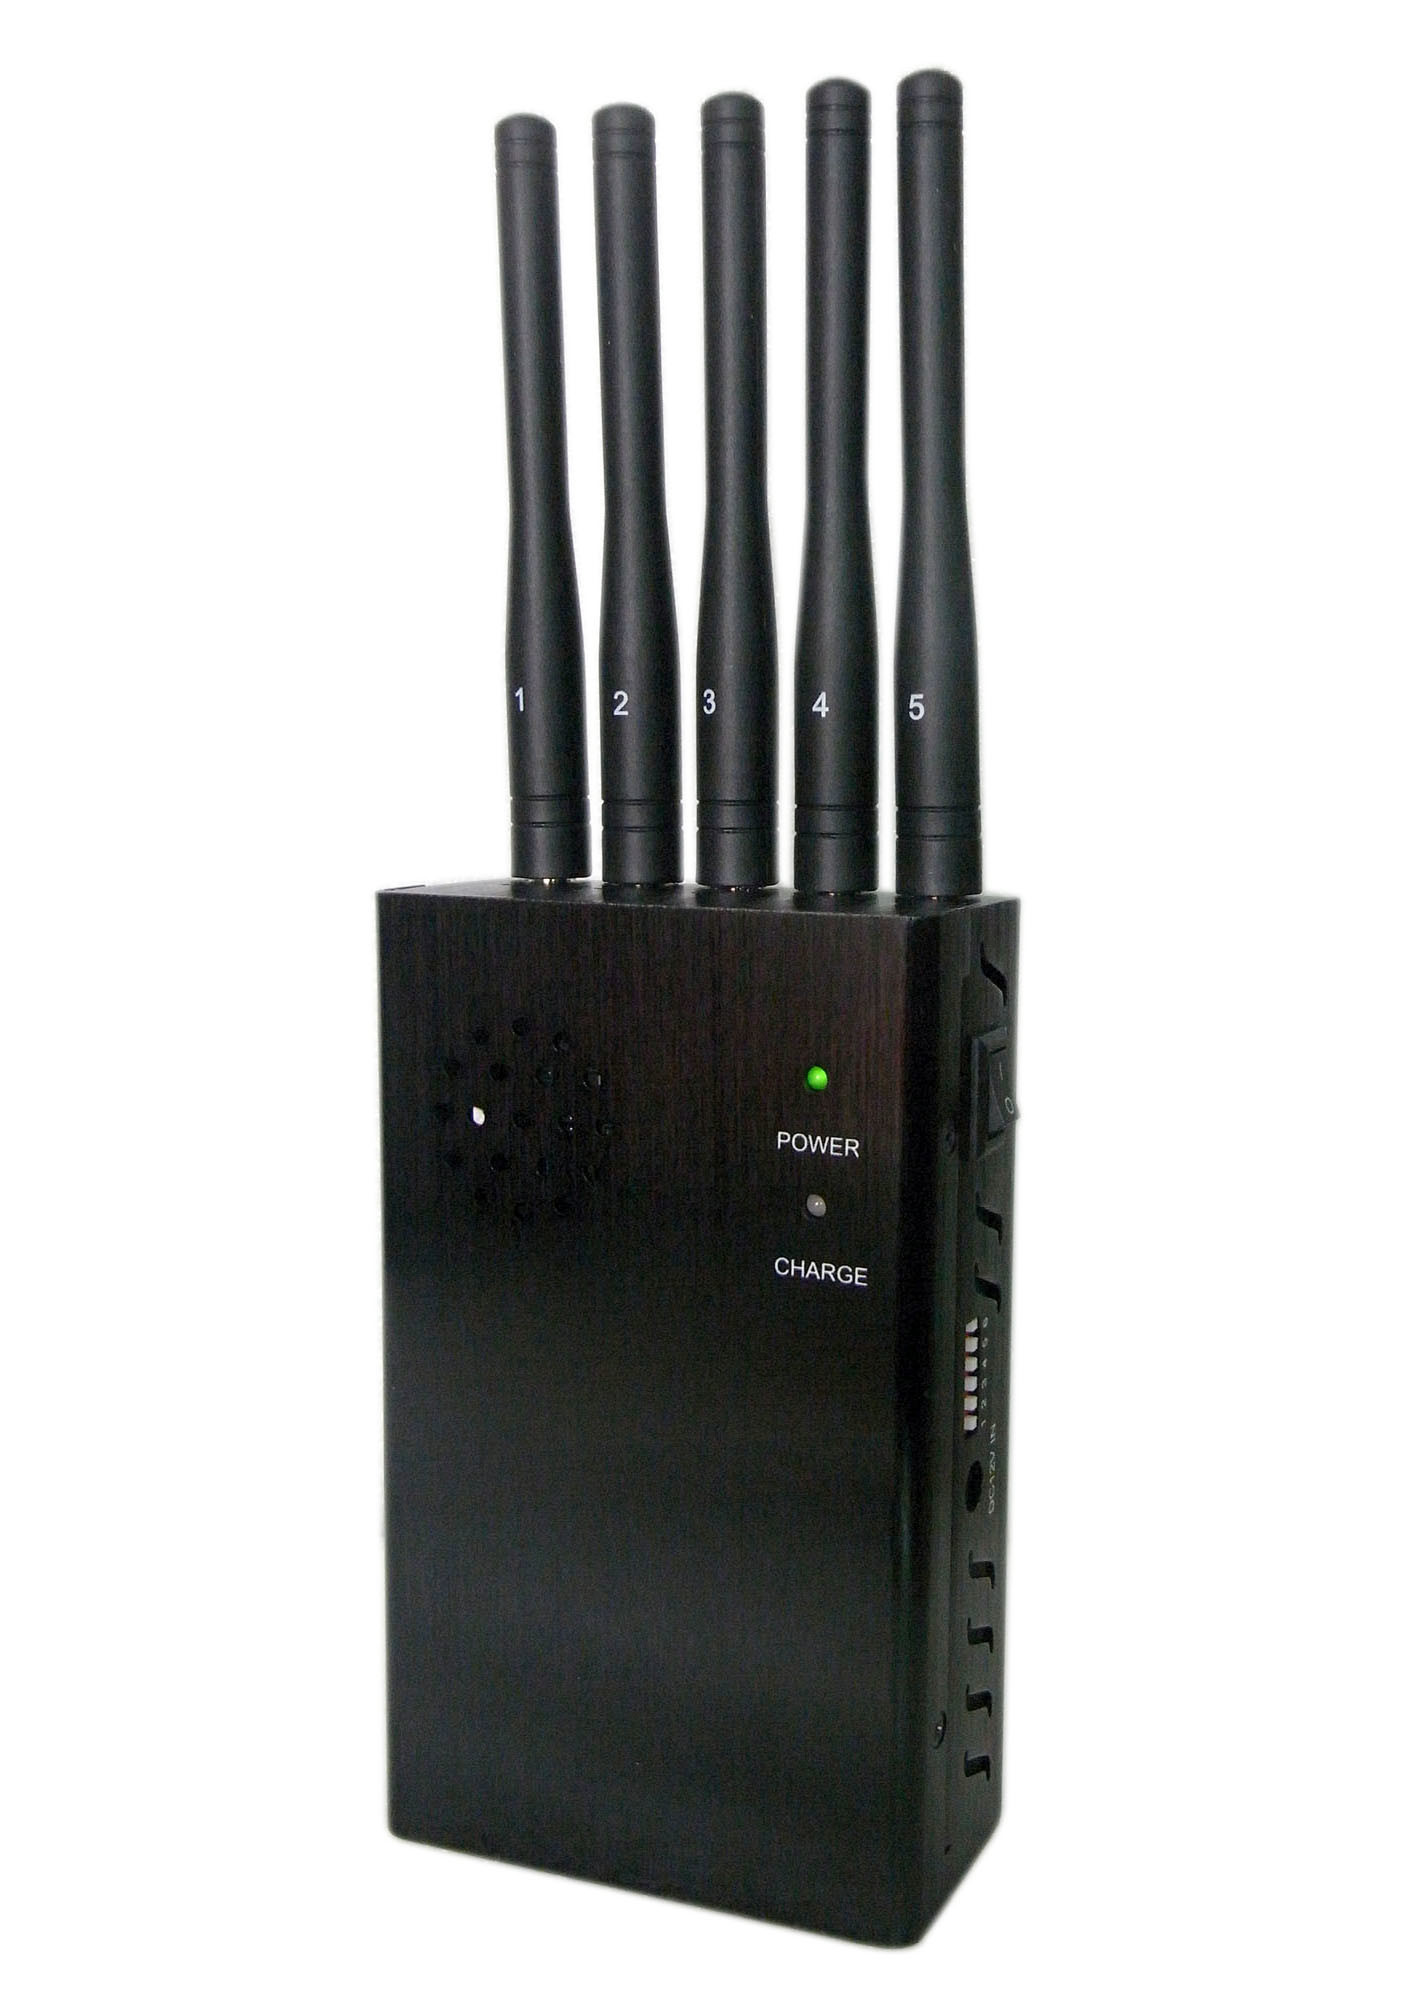 6 Bands wifi signal Block